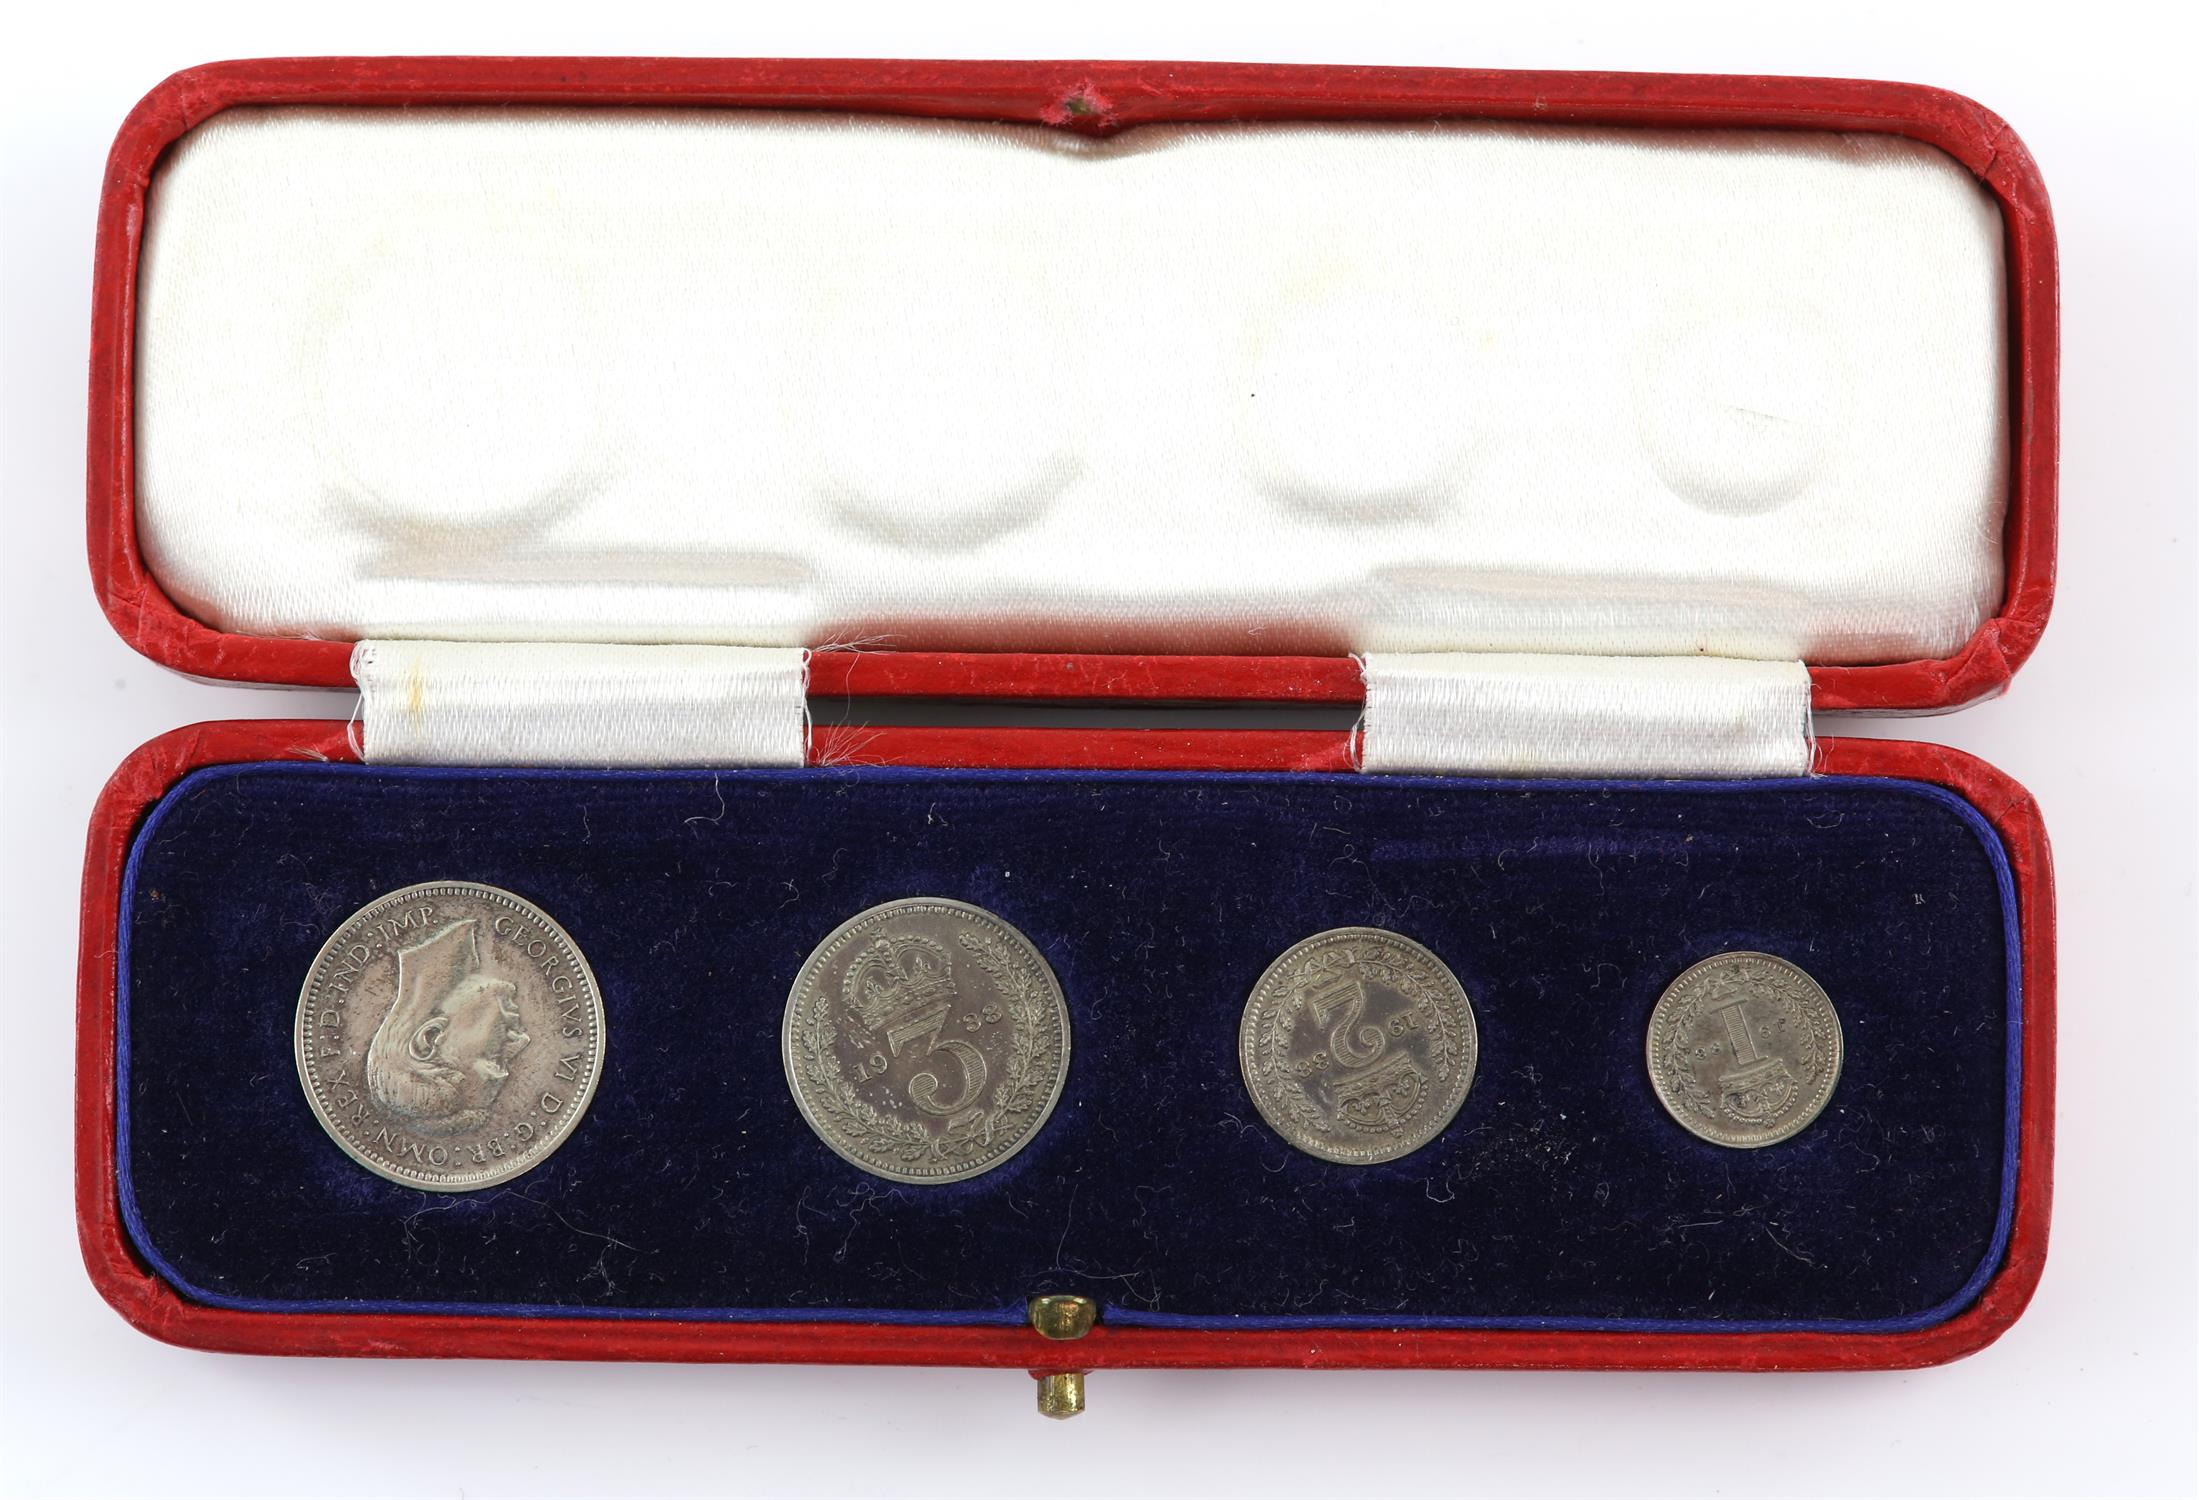 George VI 1938 Maundy Money set, comprising fourpence, threepence, twopence and penny,